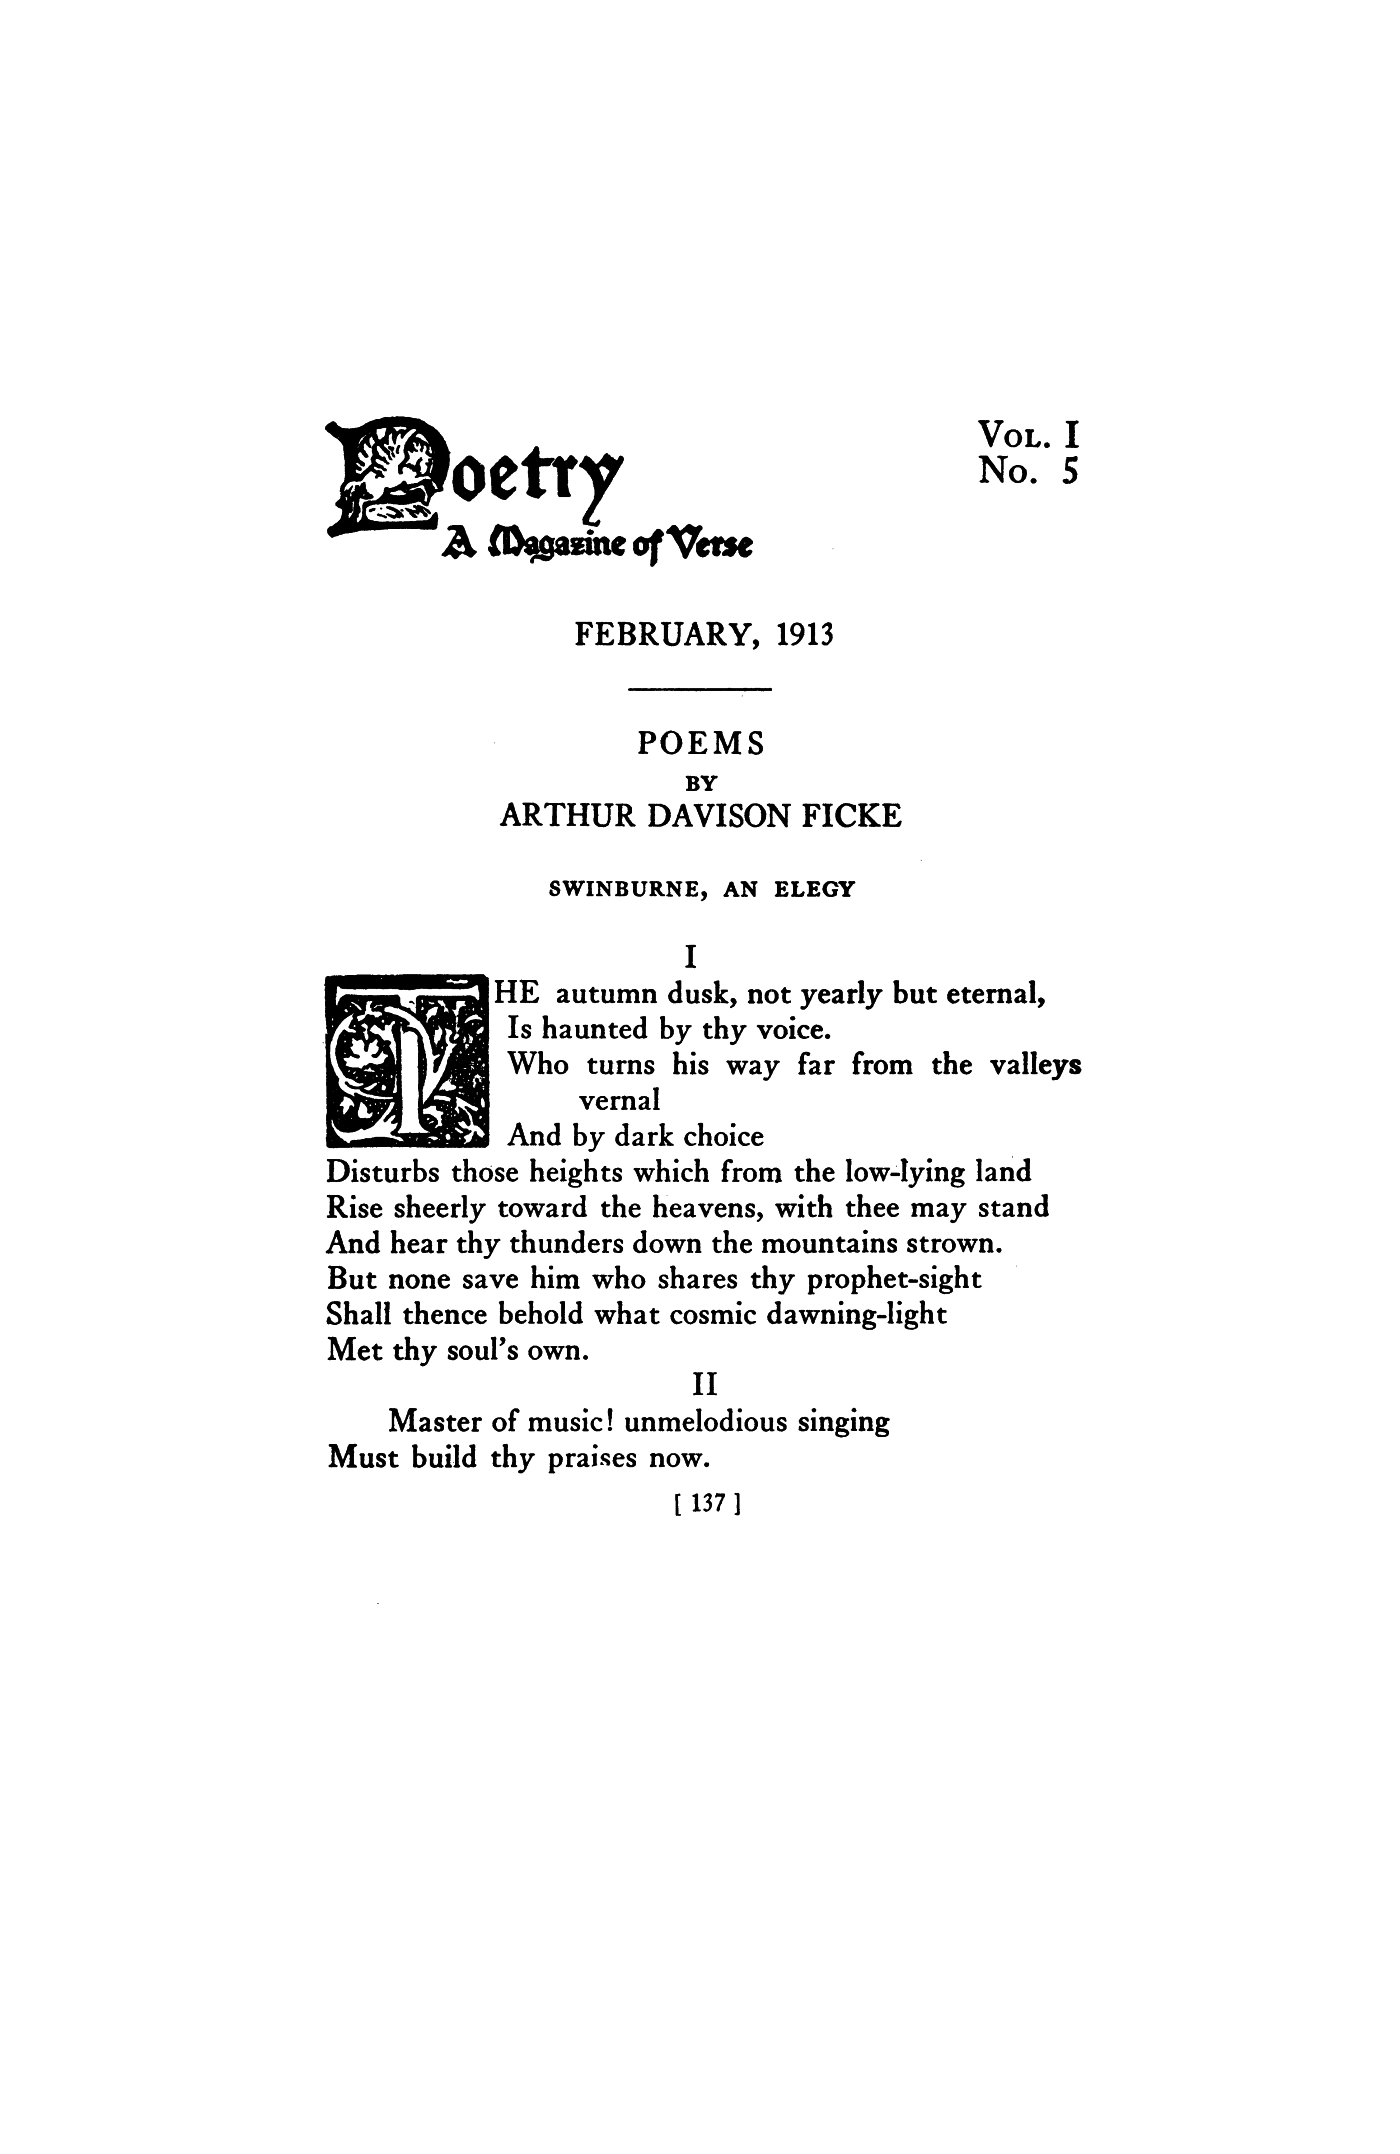 Swinburne An Elegy By Arthur Davison Ficke Poetry Magazine